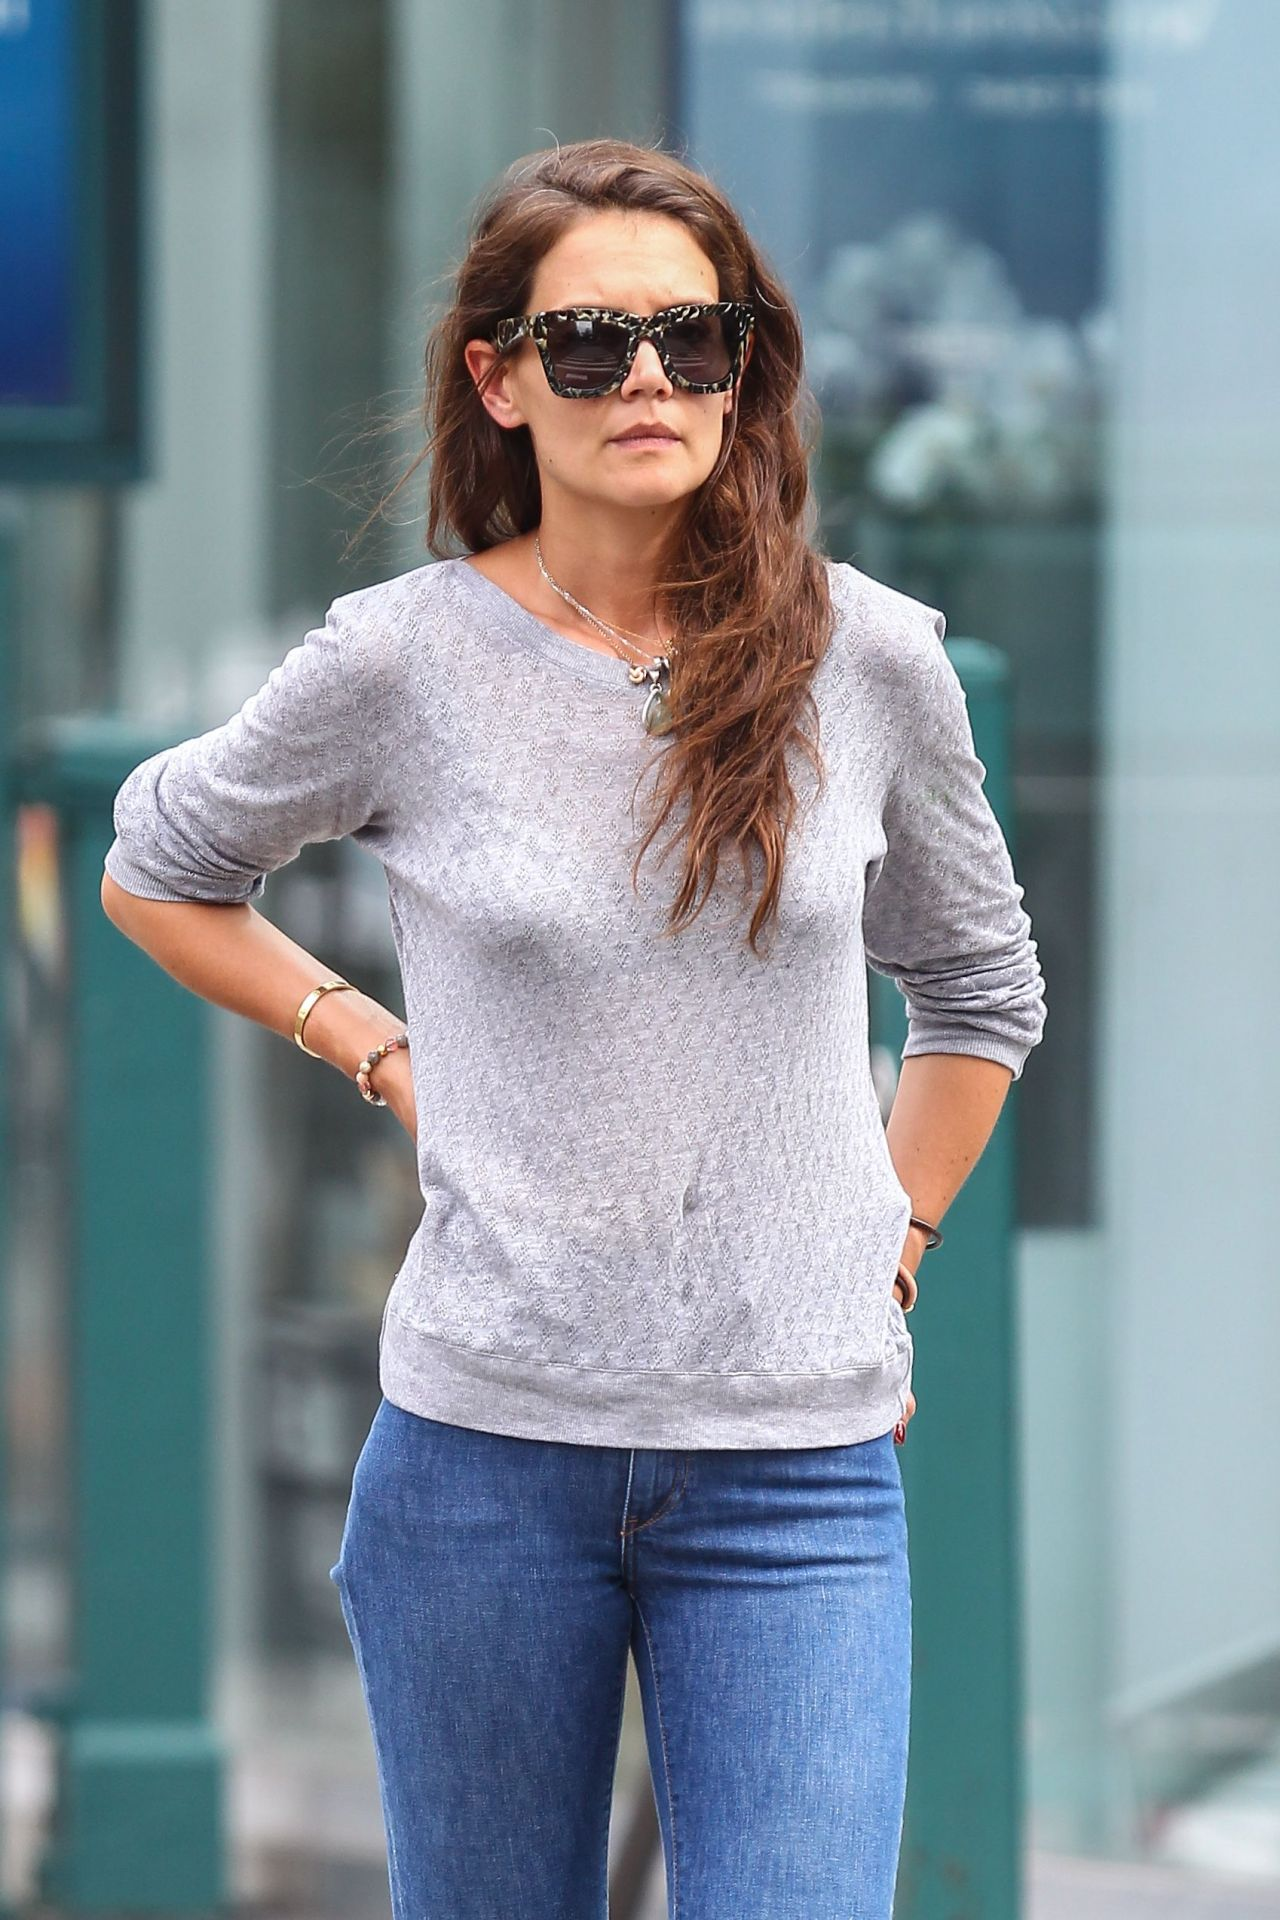 Katie Holmes Tight in Jeans - Out in NYC, July 2015 Katie Holmes